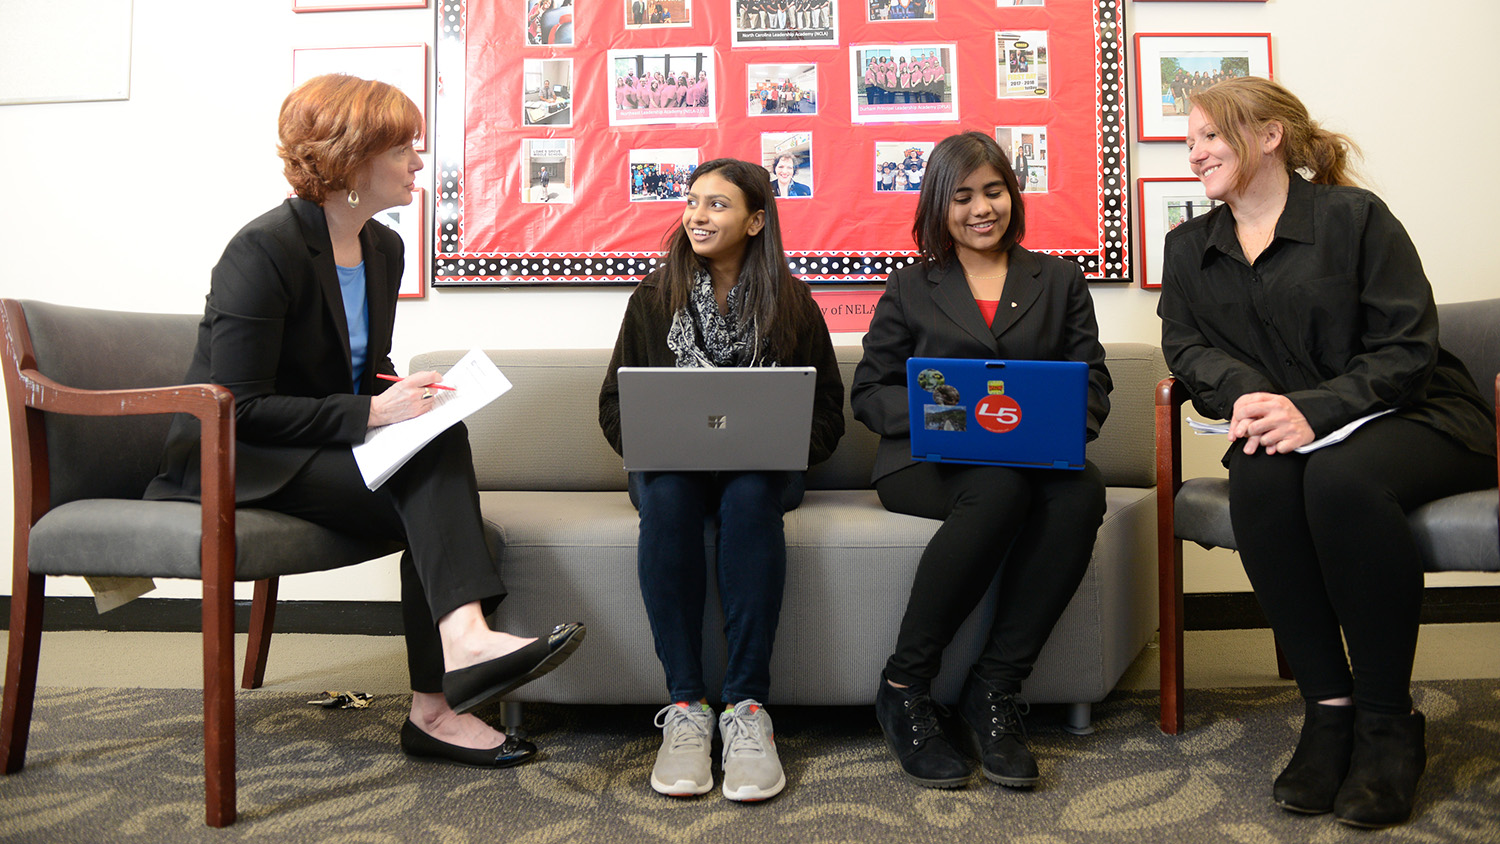 students sitting on couch with laptops